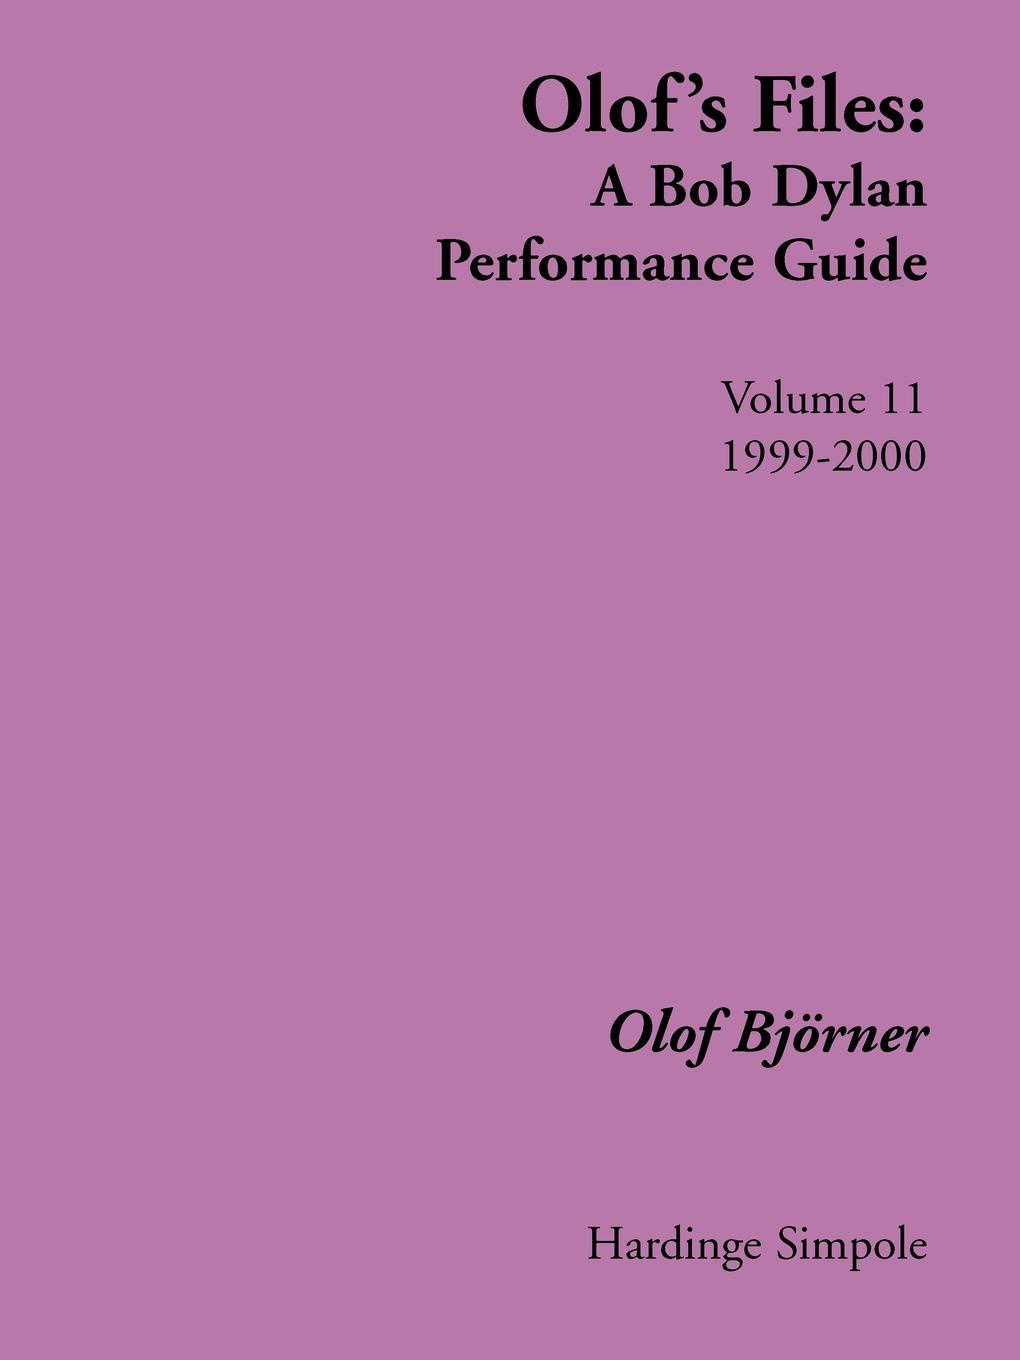 Фото - Olof Bjvrner, Olof Bjorner Olof's Files. A Bob Dylan Performance Guide : Volume 11 : 1999-2000 gifted 2 better late than never